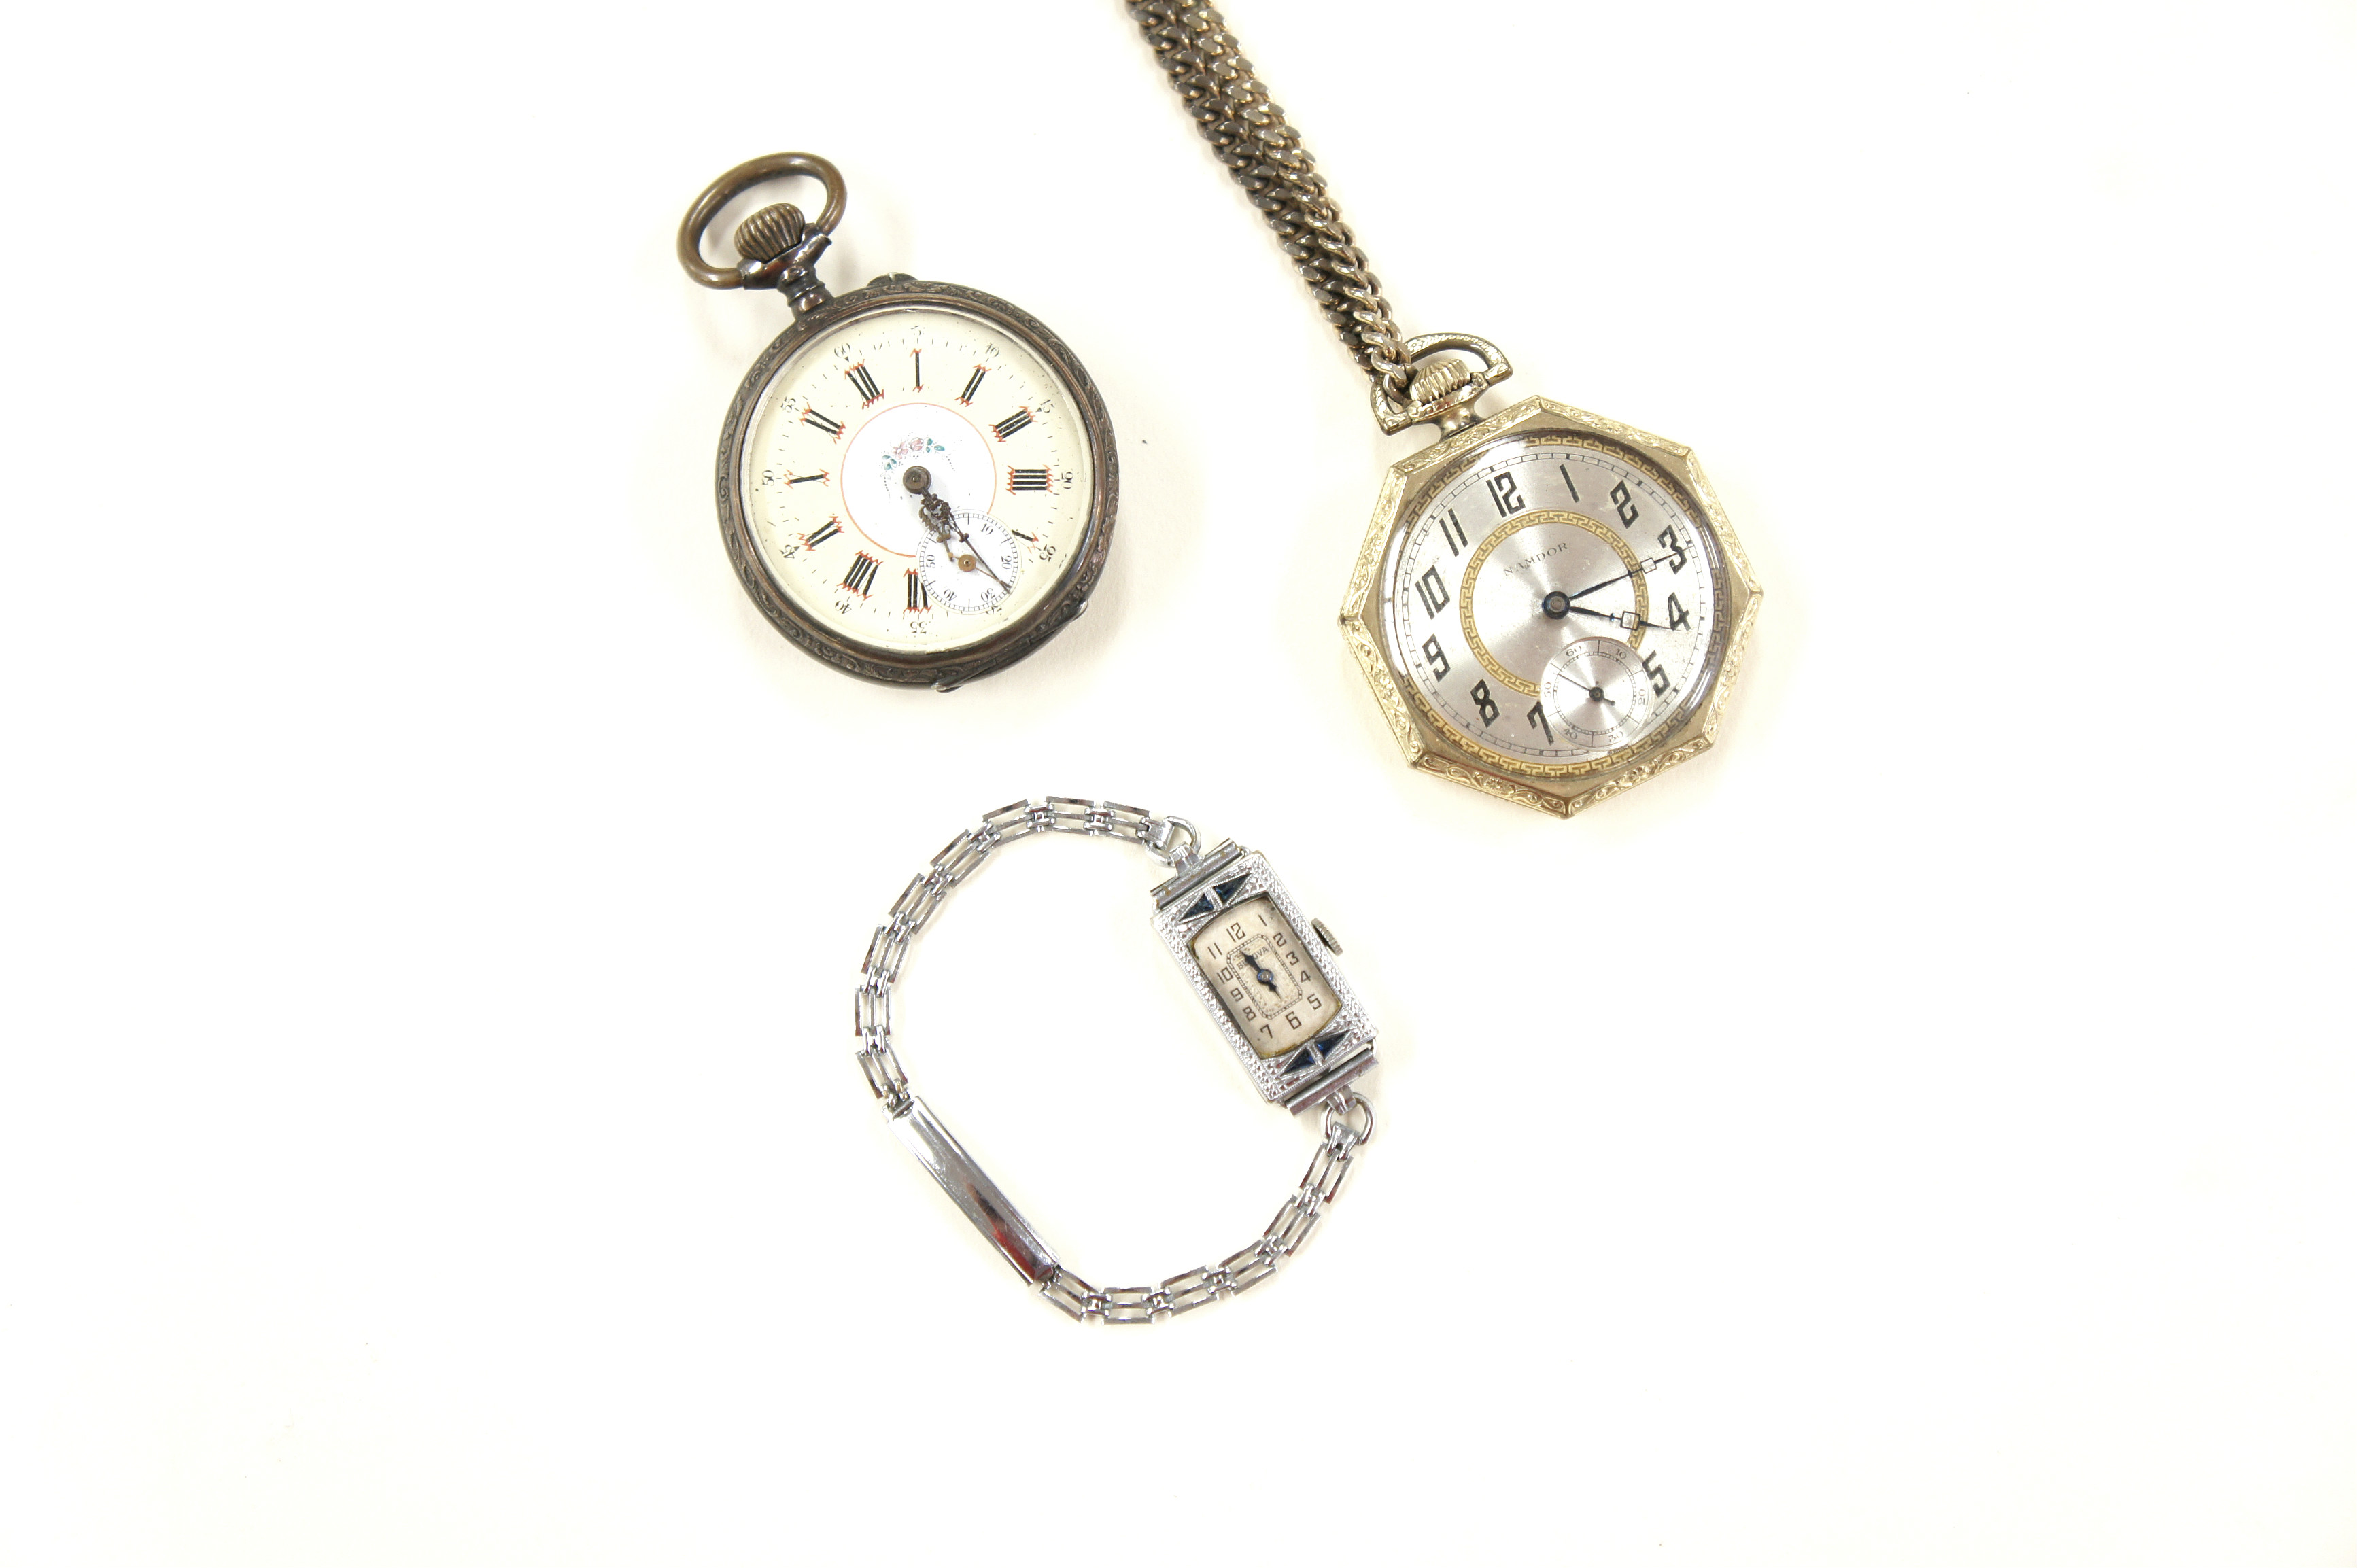 1920s or earlier pocket watches from Sayville Antiques image: rachel kalina